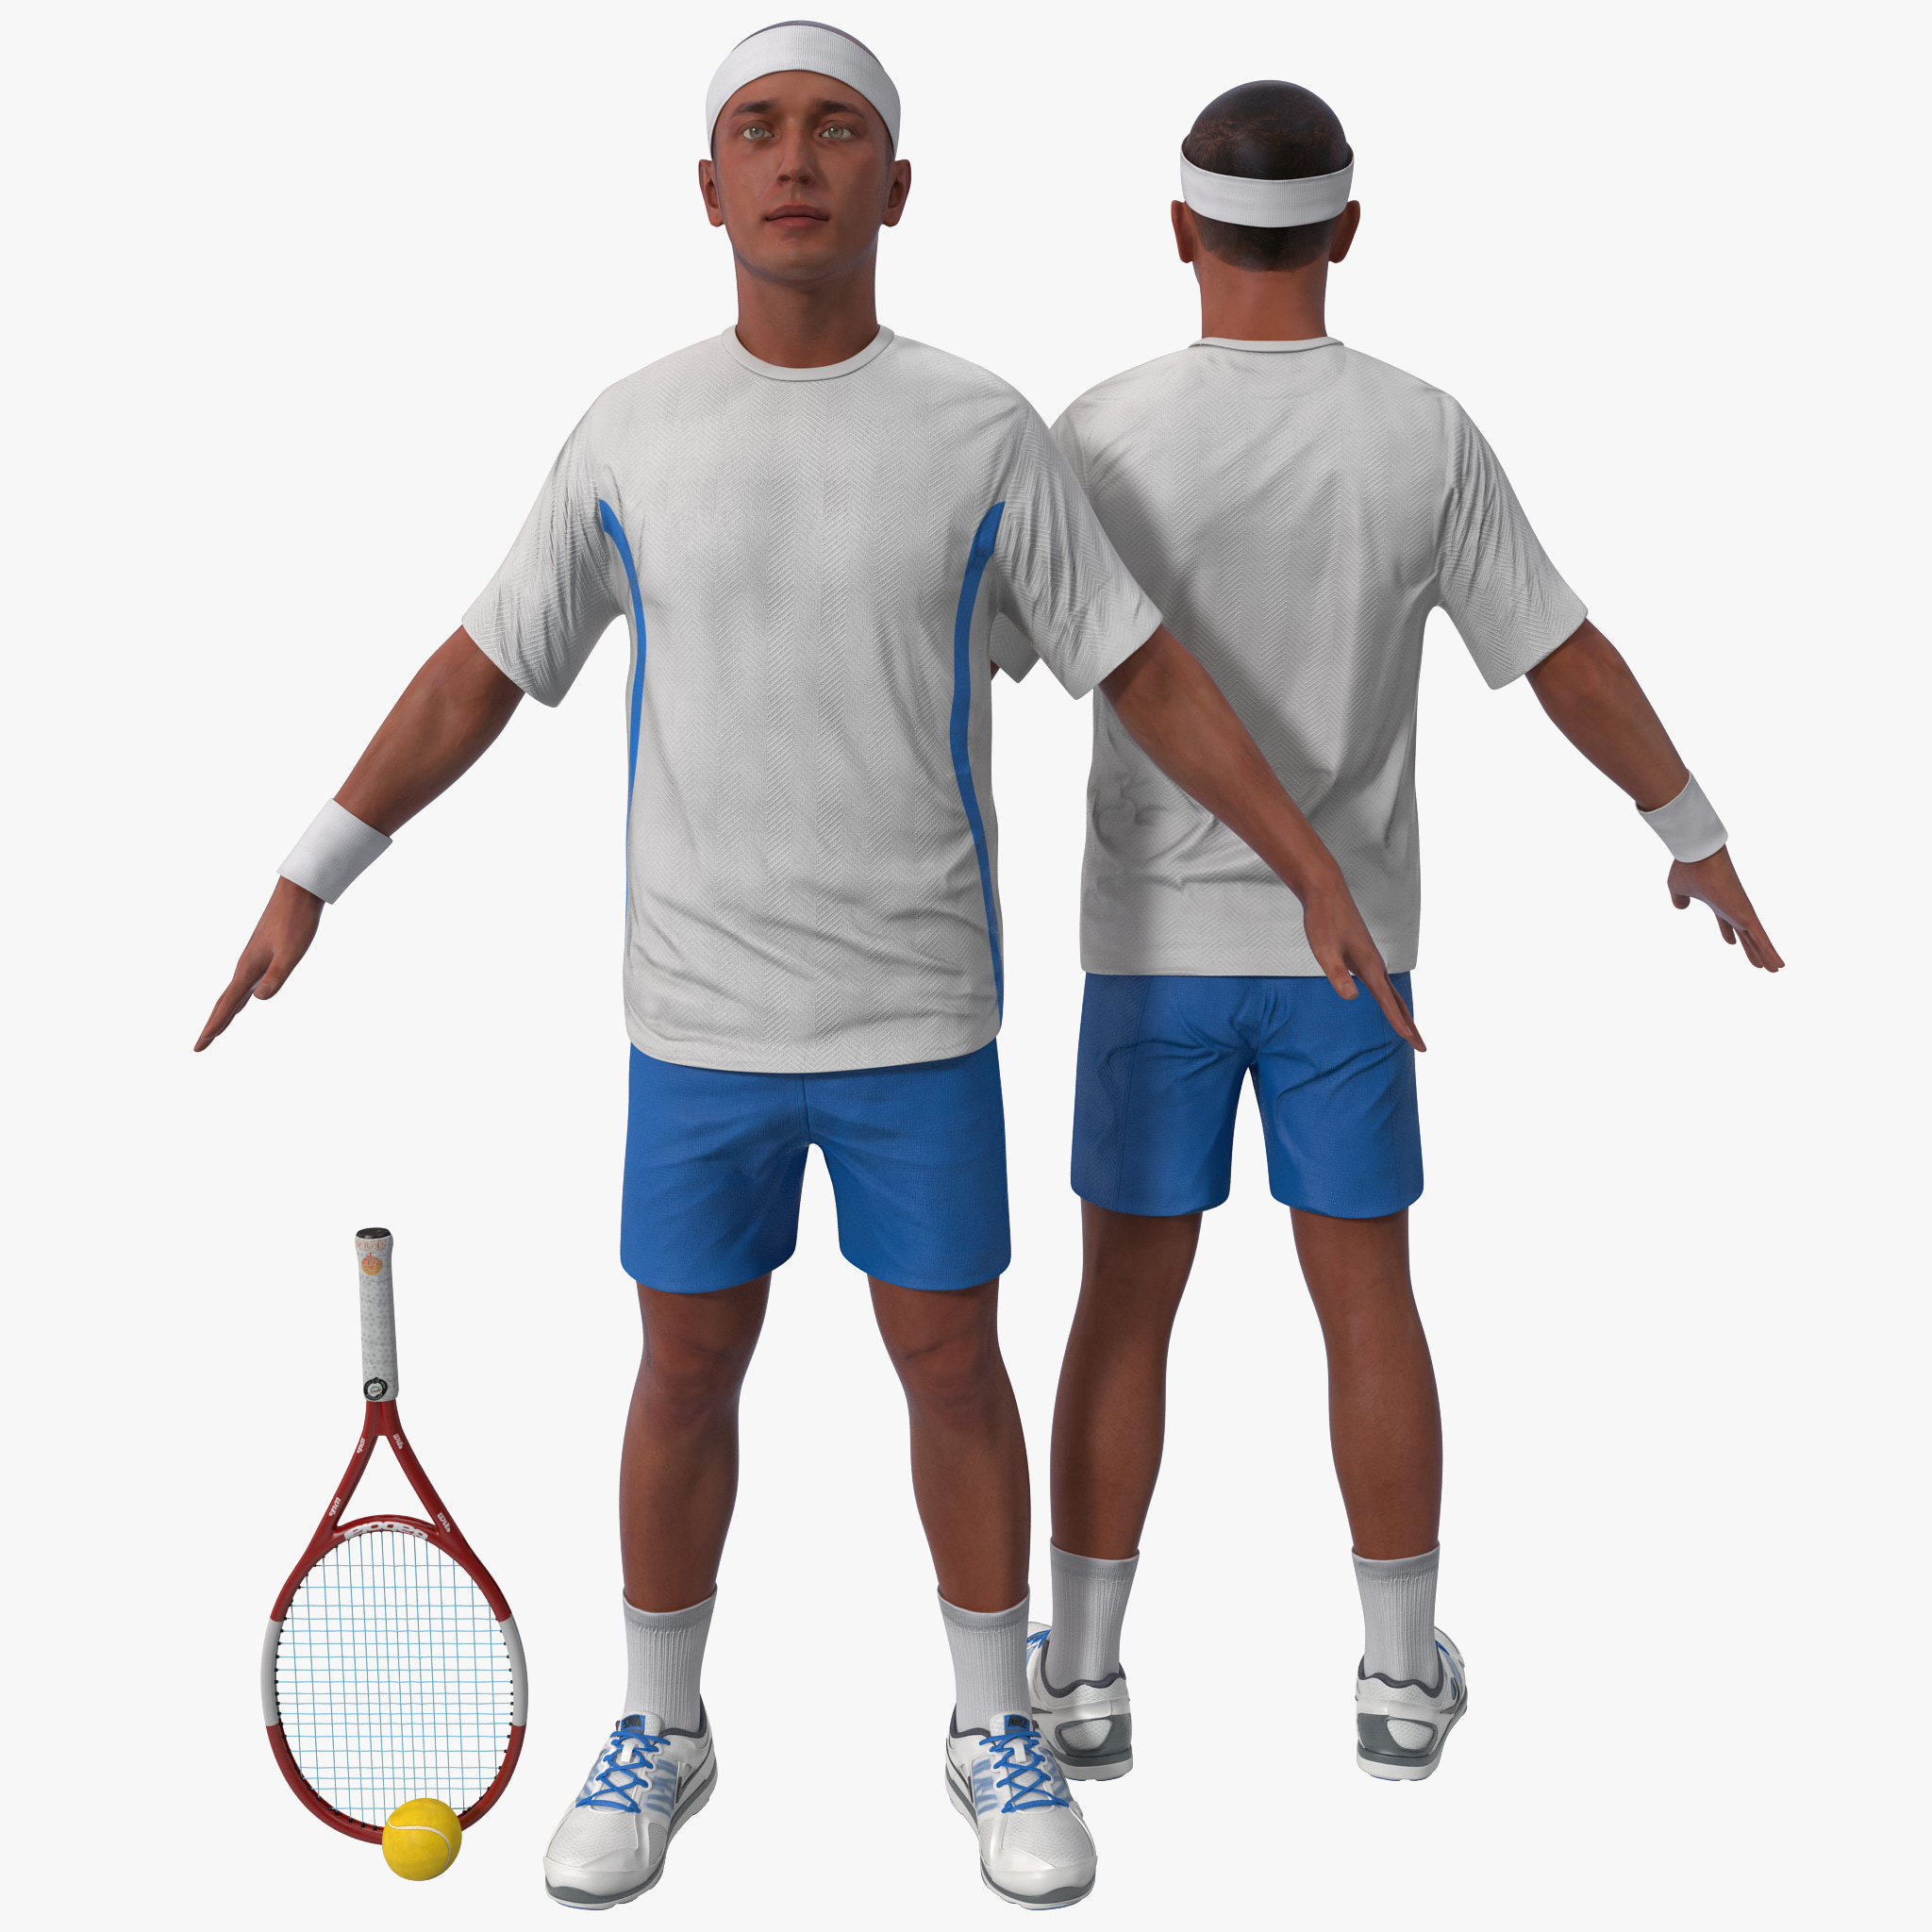 Tennis Player Rigged 2